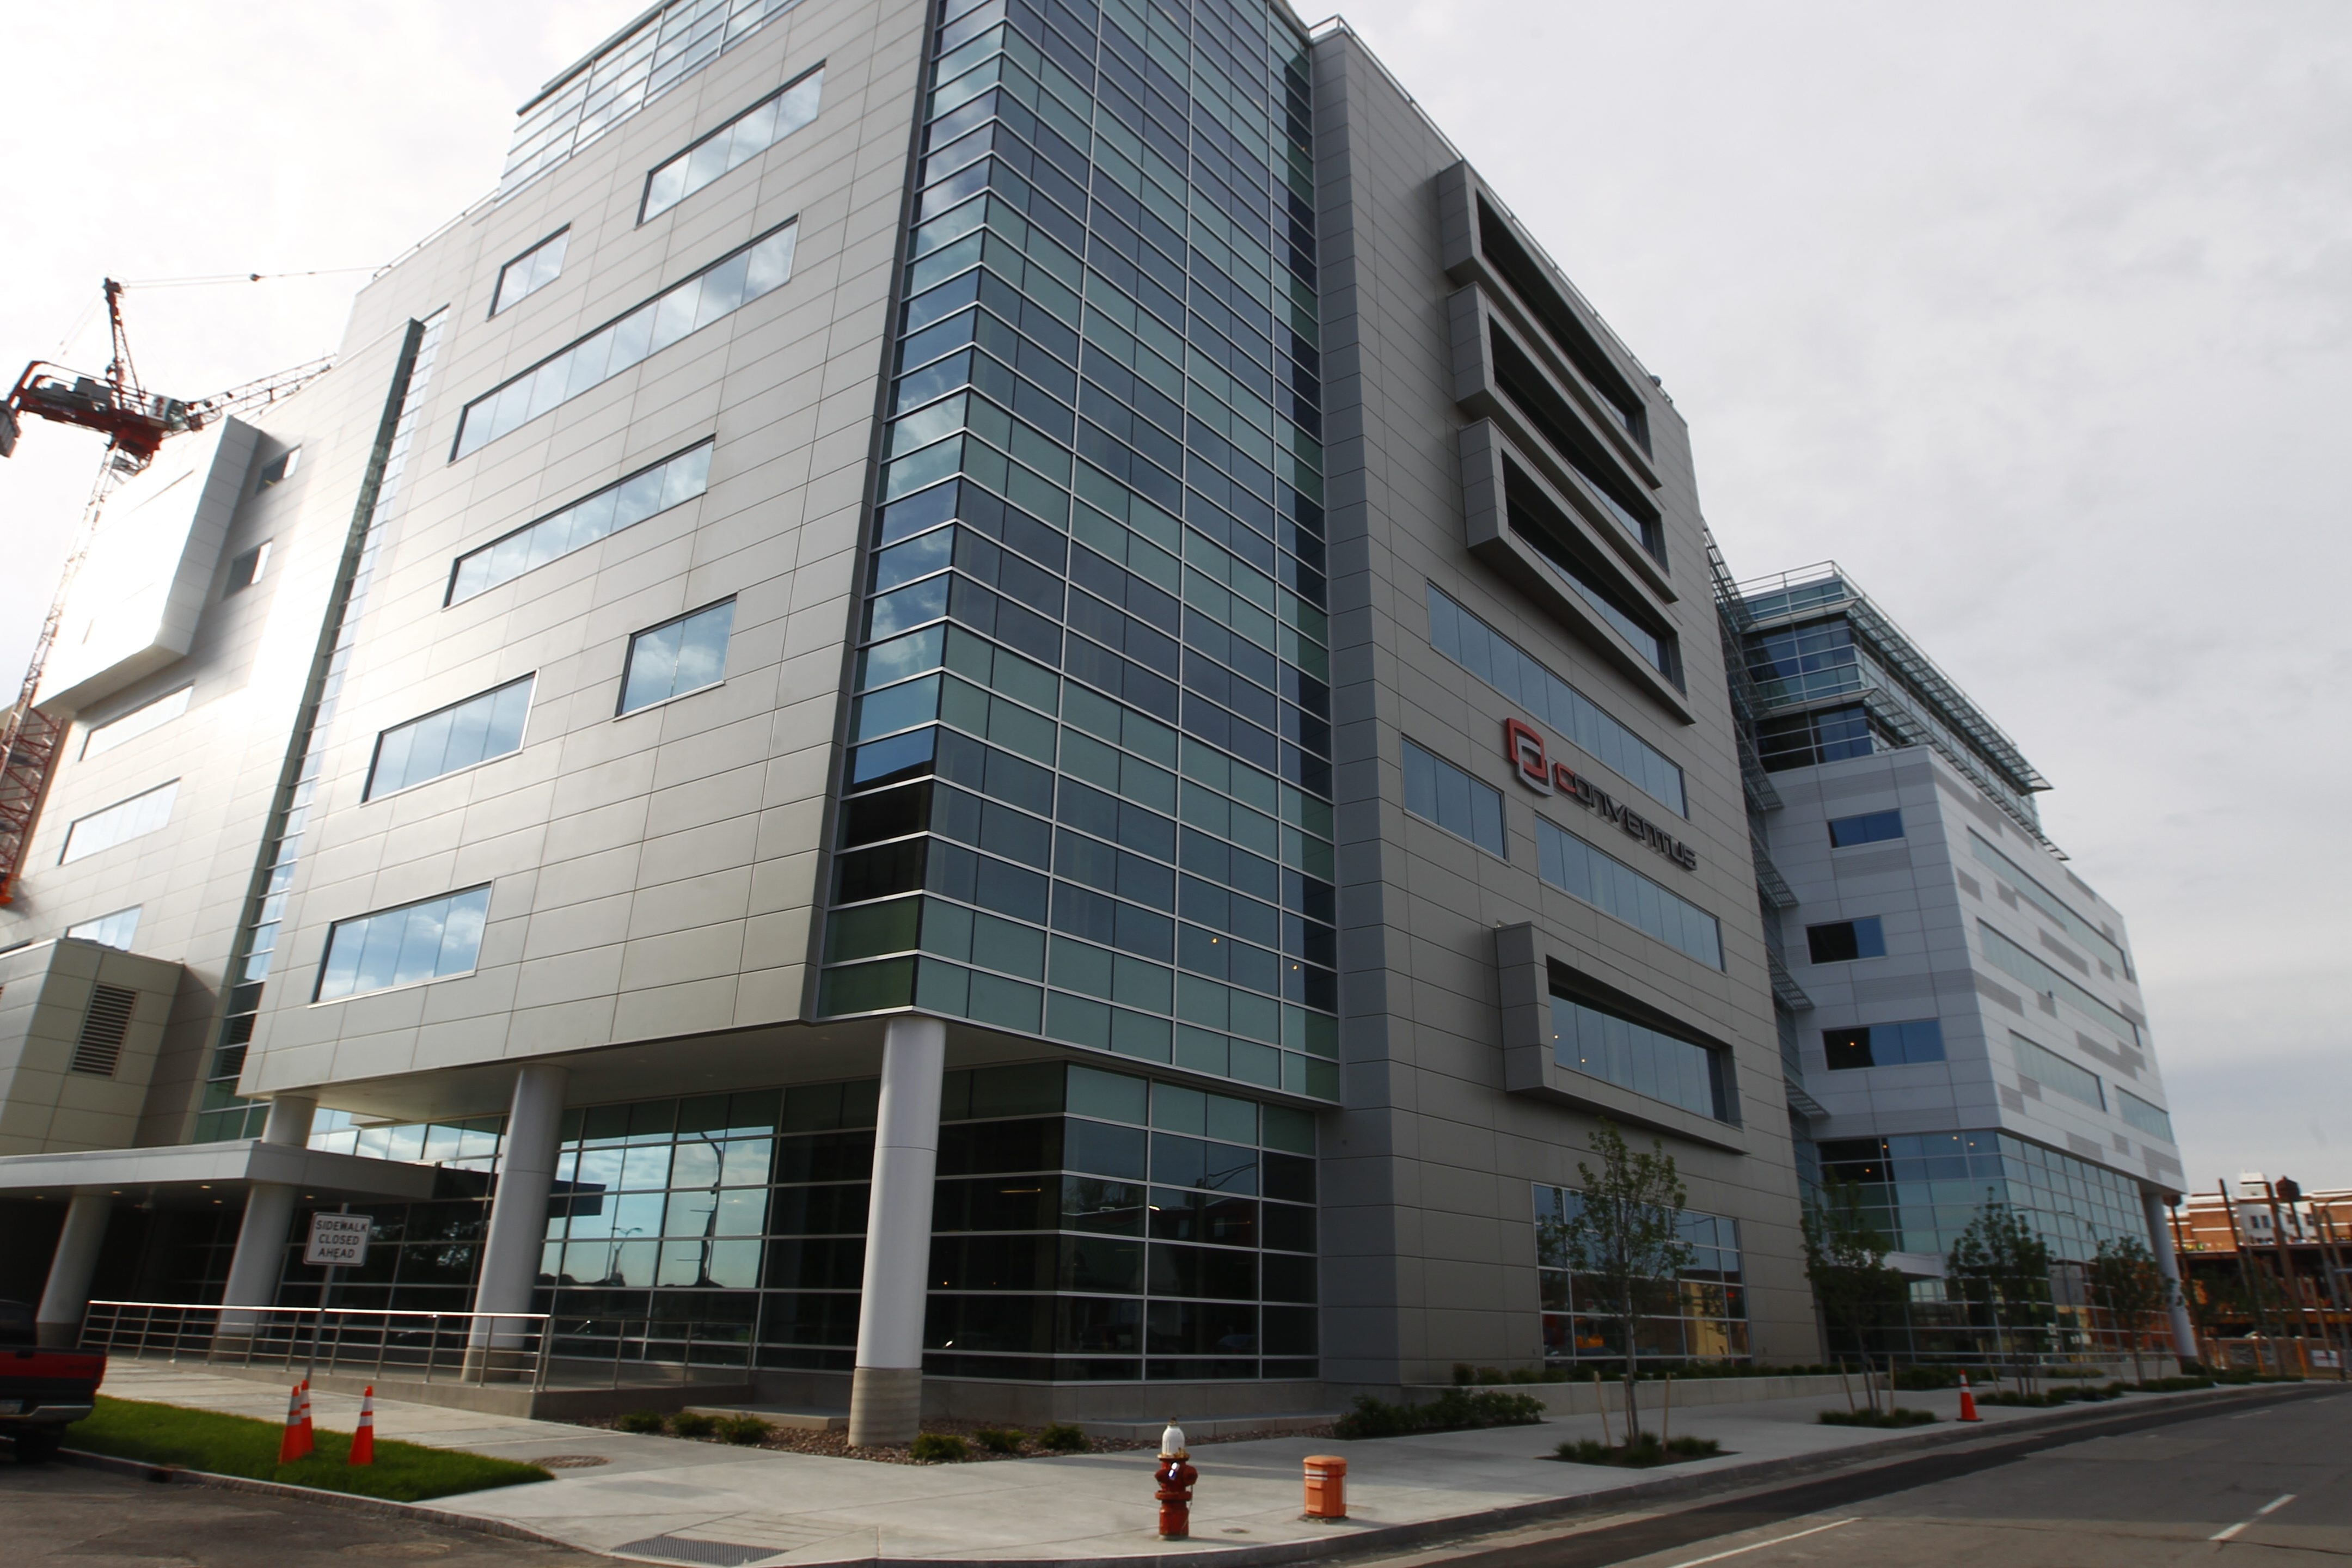 The Conventus building is expected to house Kinex Pharmaceuticals, a Buffalo-based company.